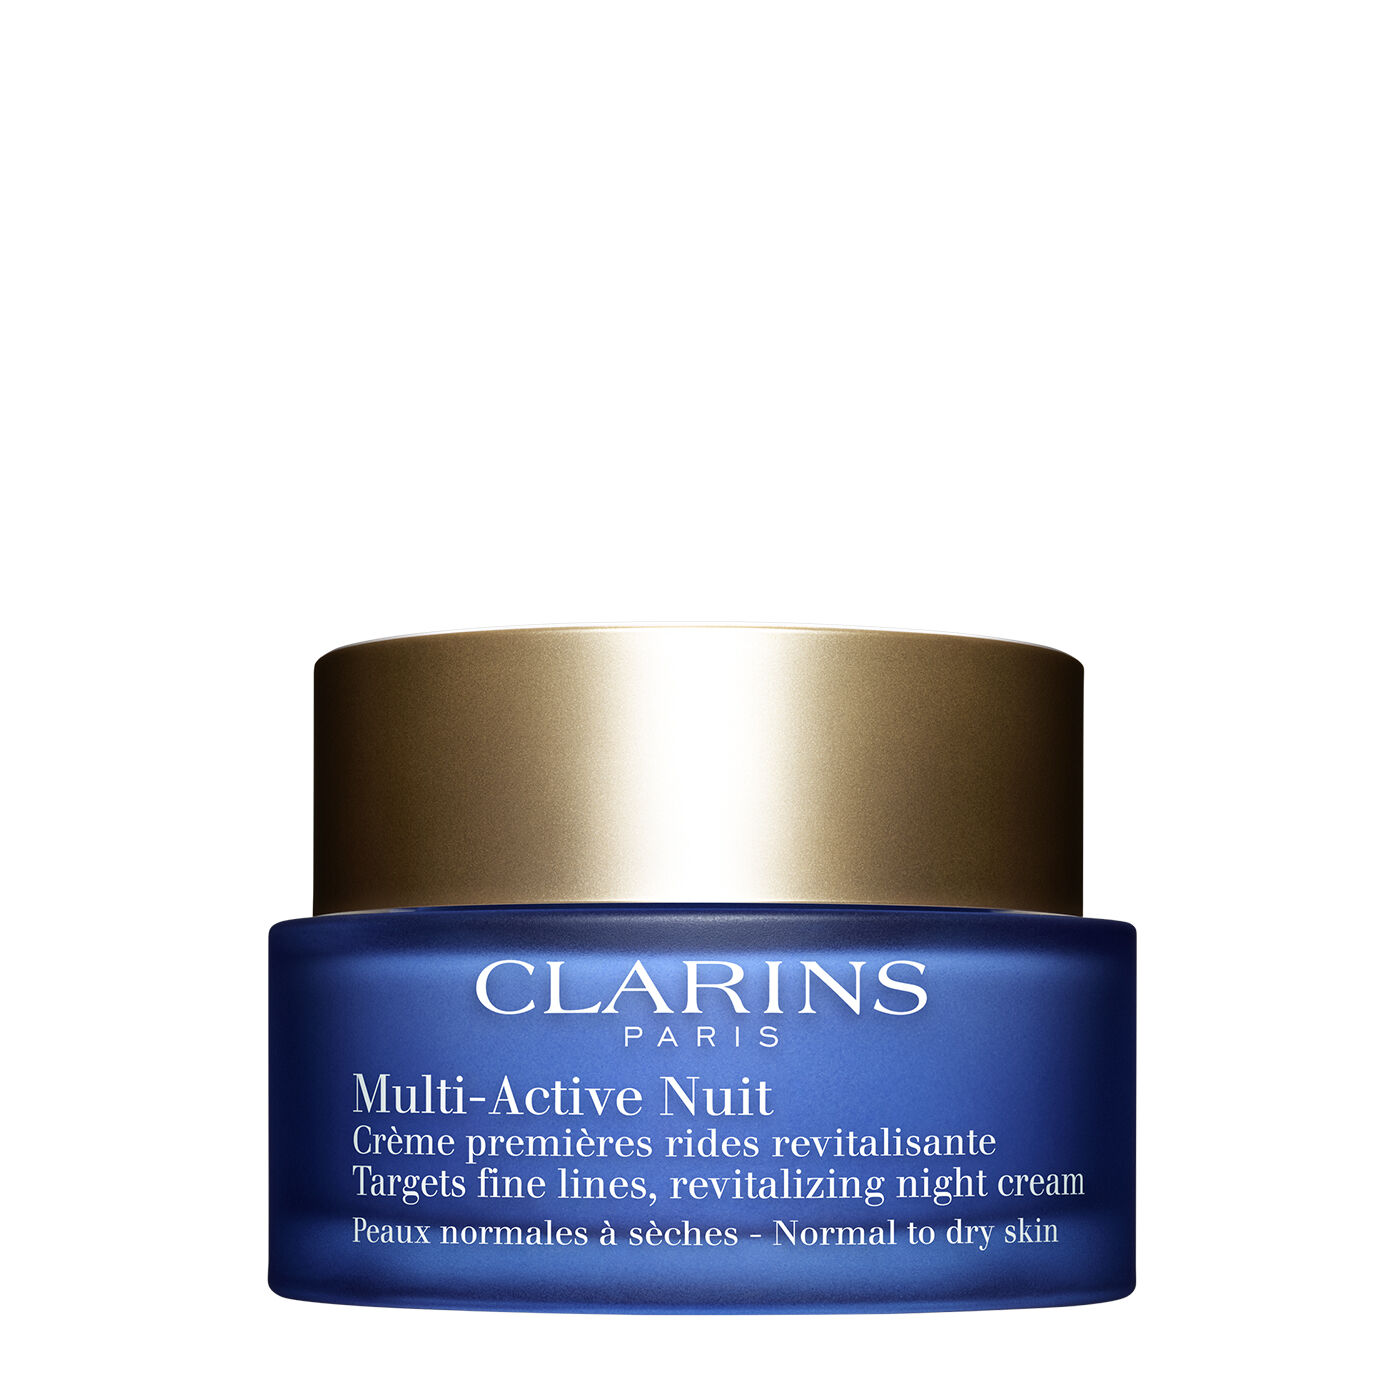 NEW Multi-Active Multi-Active night cream comfort Normal to dry skin